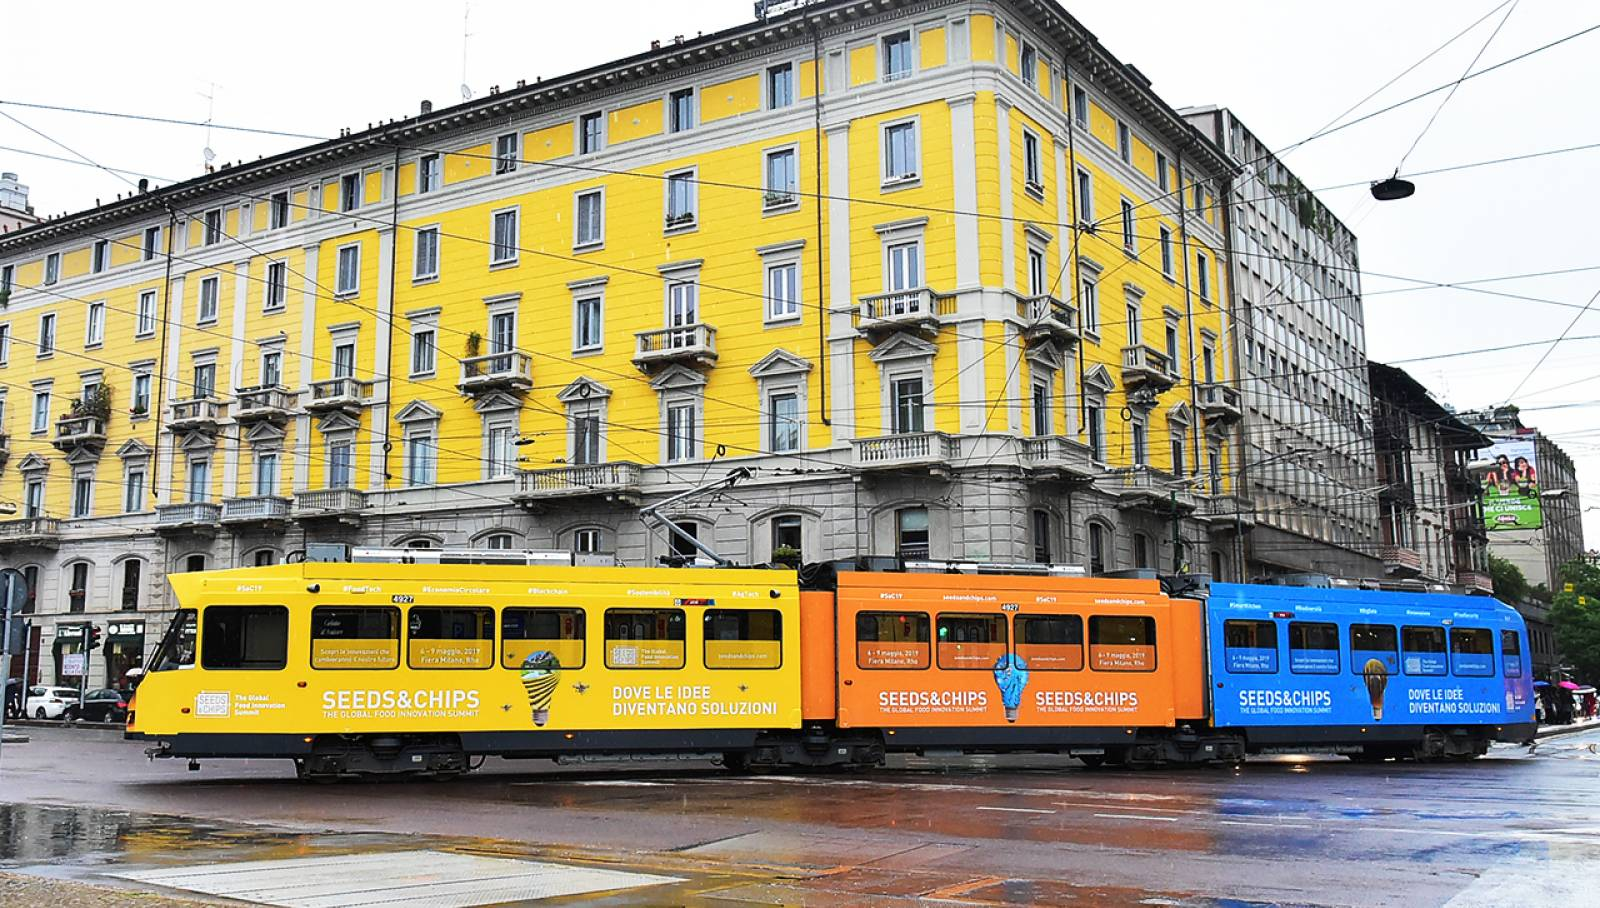 Full-Wrap IGPDecaux a Milano per Seeds&Chips